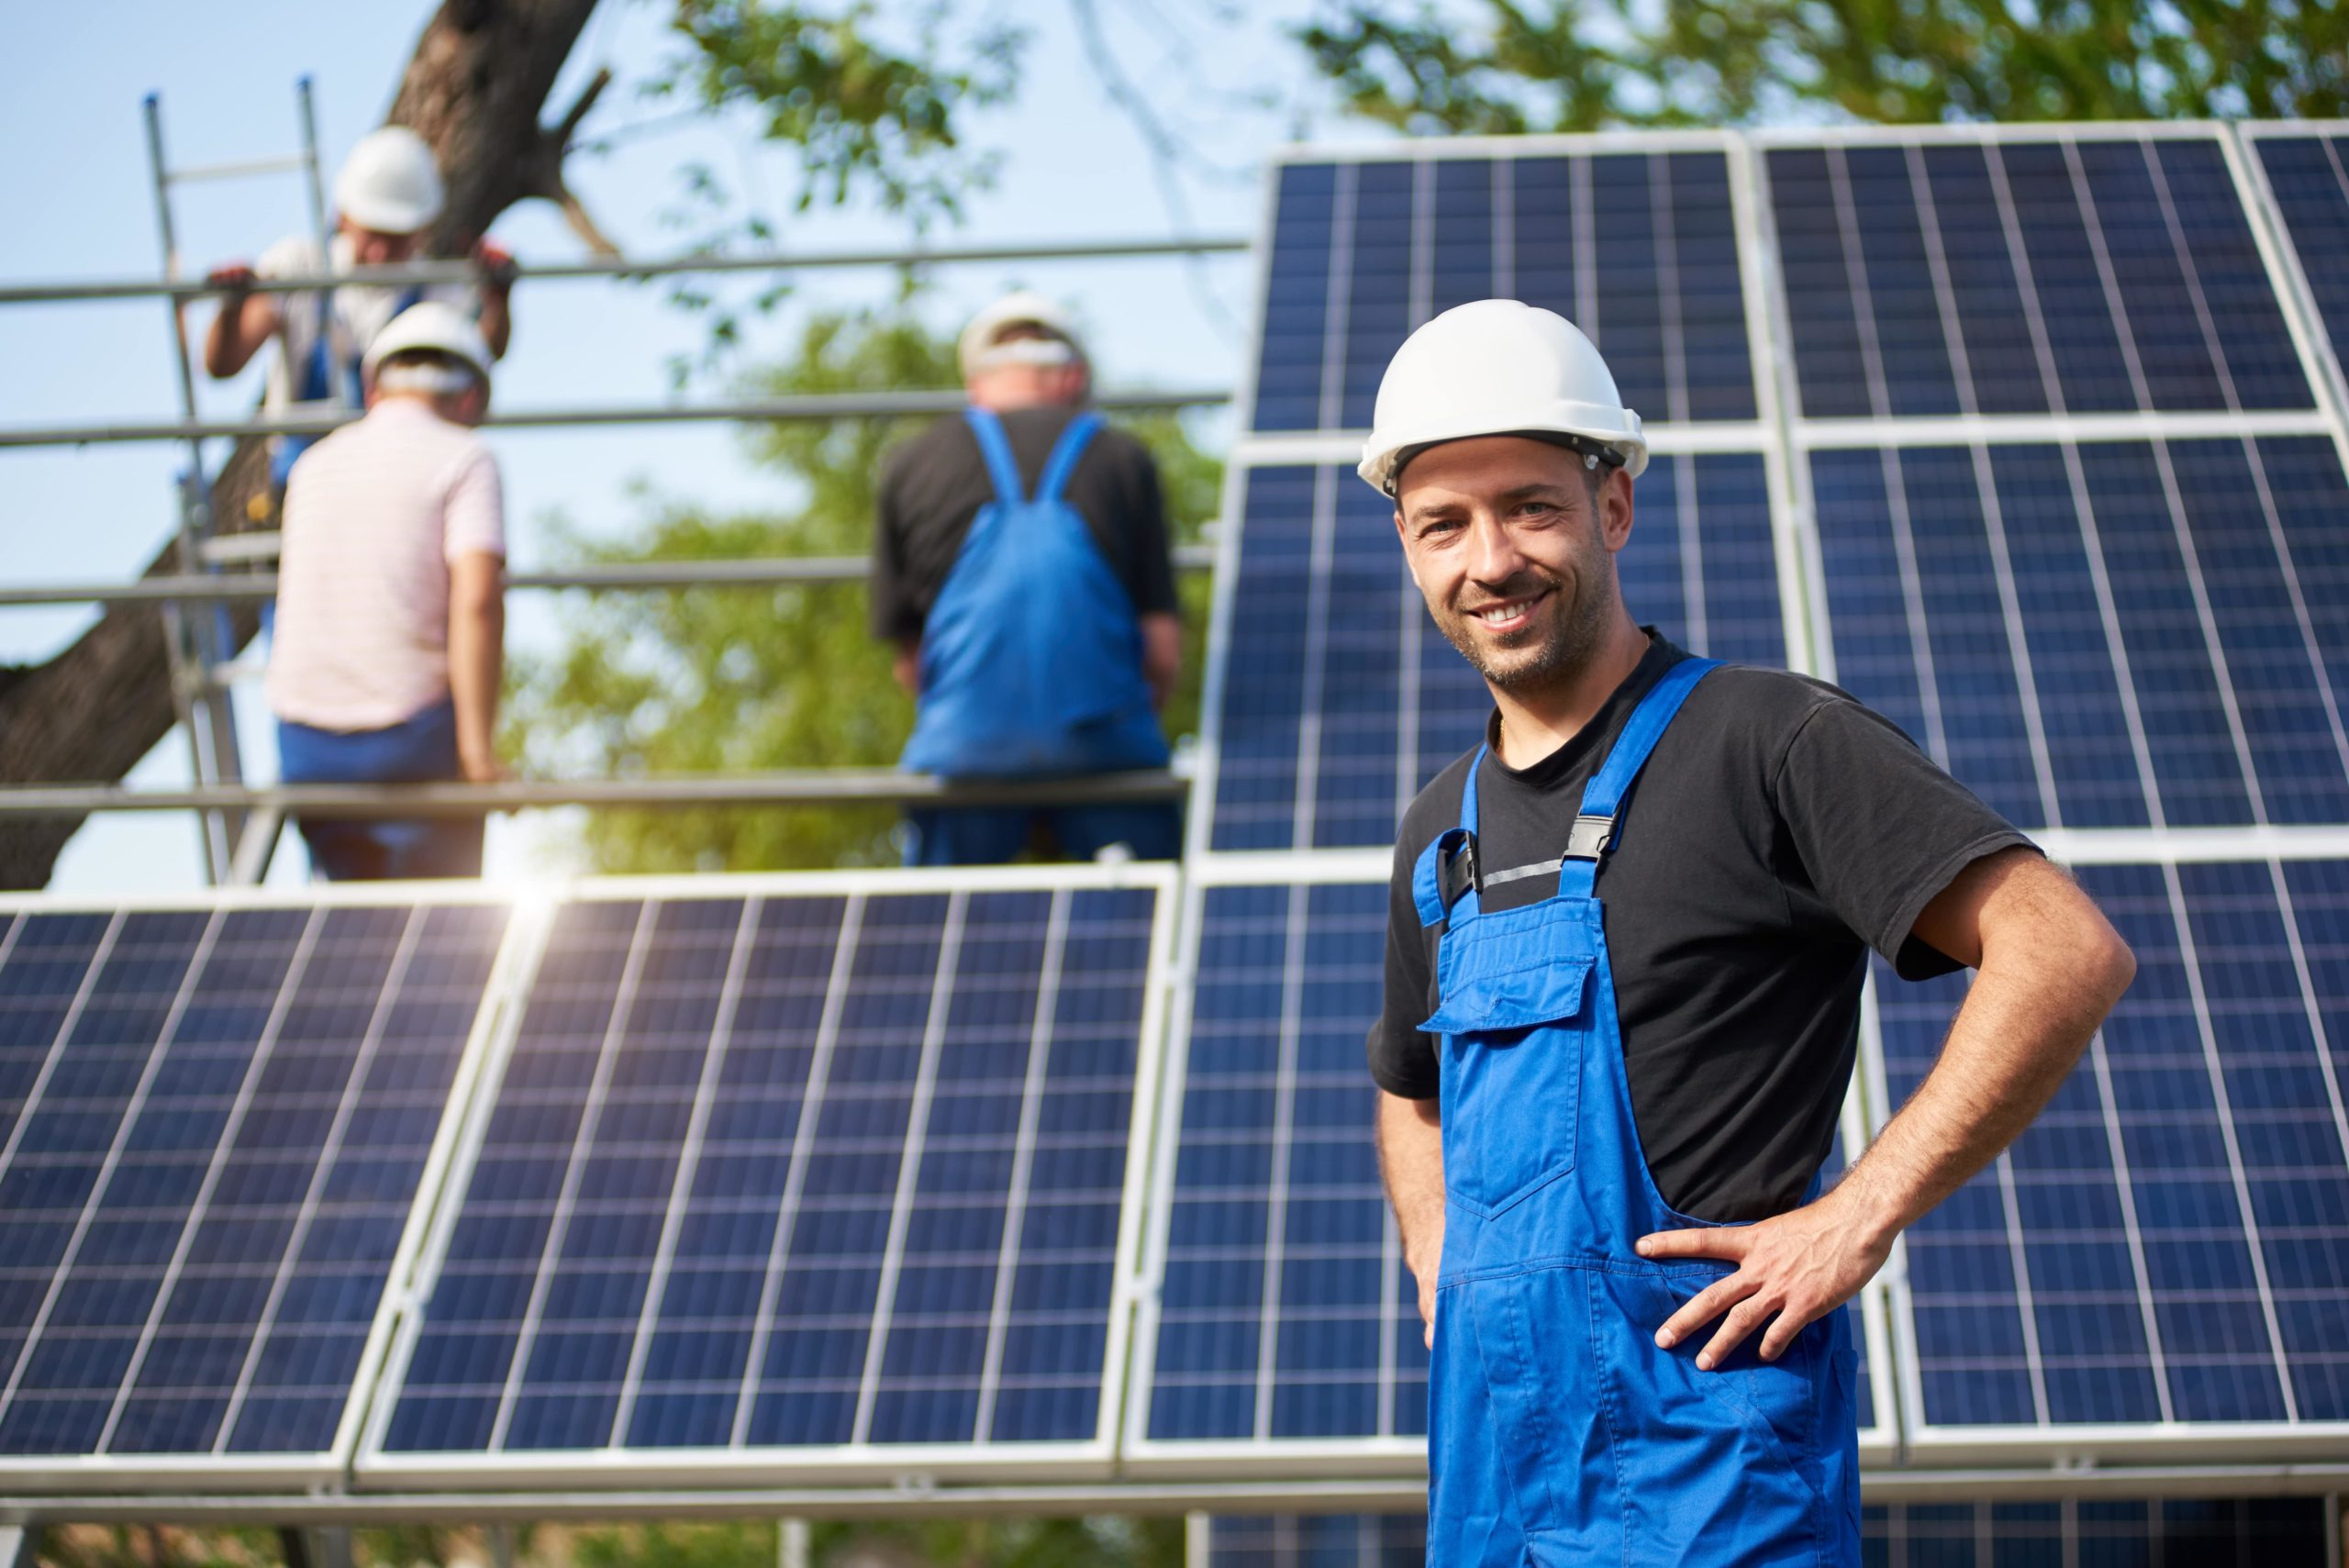 General Contractor working on Solar Panels - Solar Panel Companies Near Me - Get Your Quote